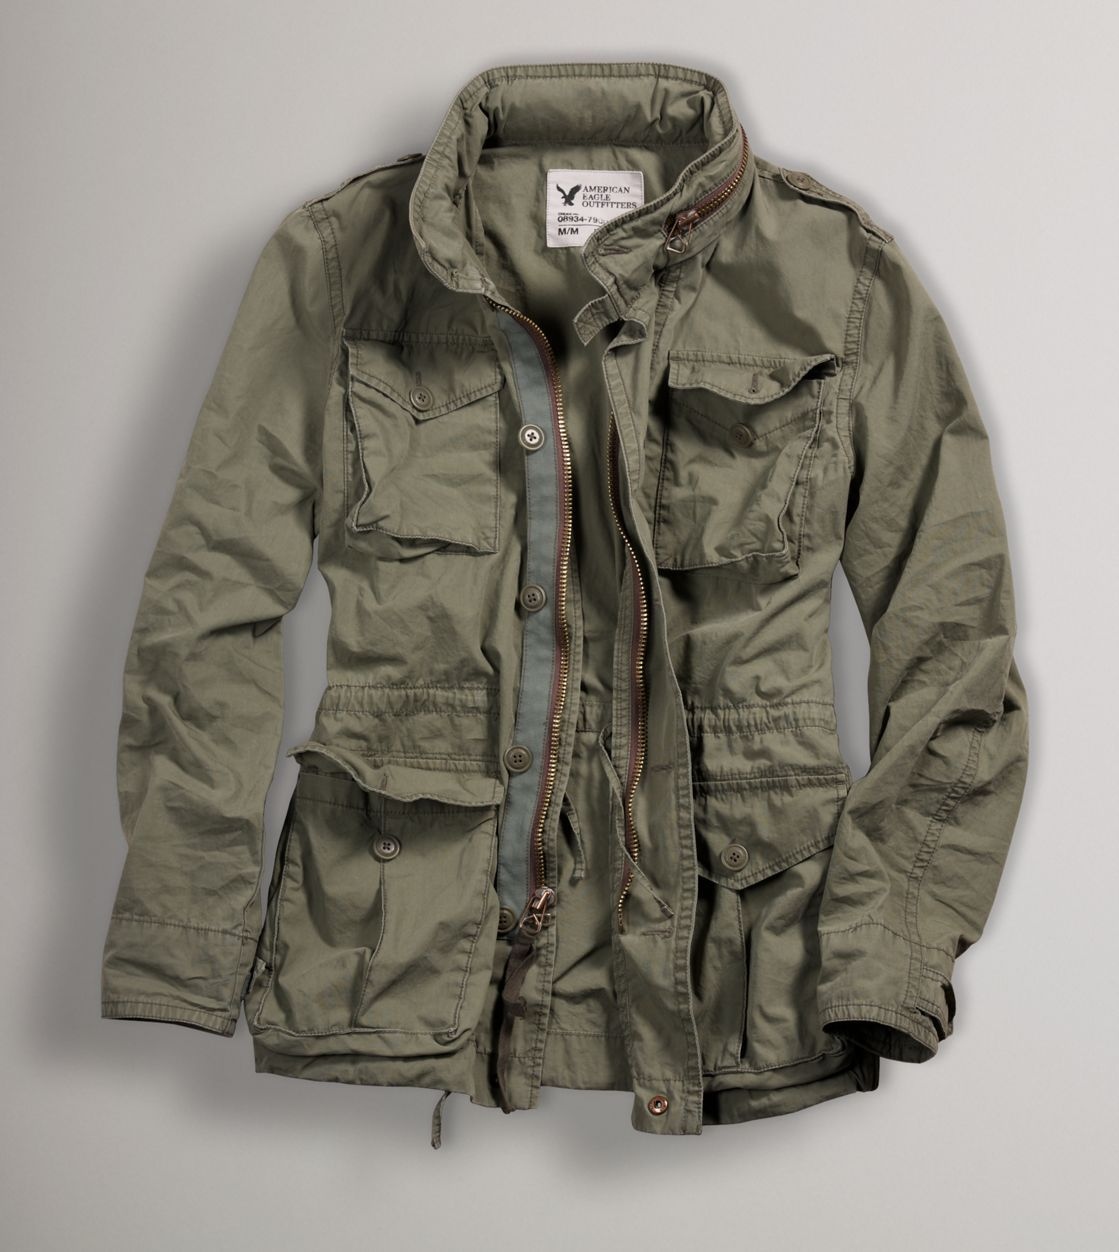 AEO Filled Military Jacket | Military style jackets, Military ...